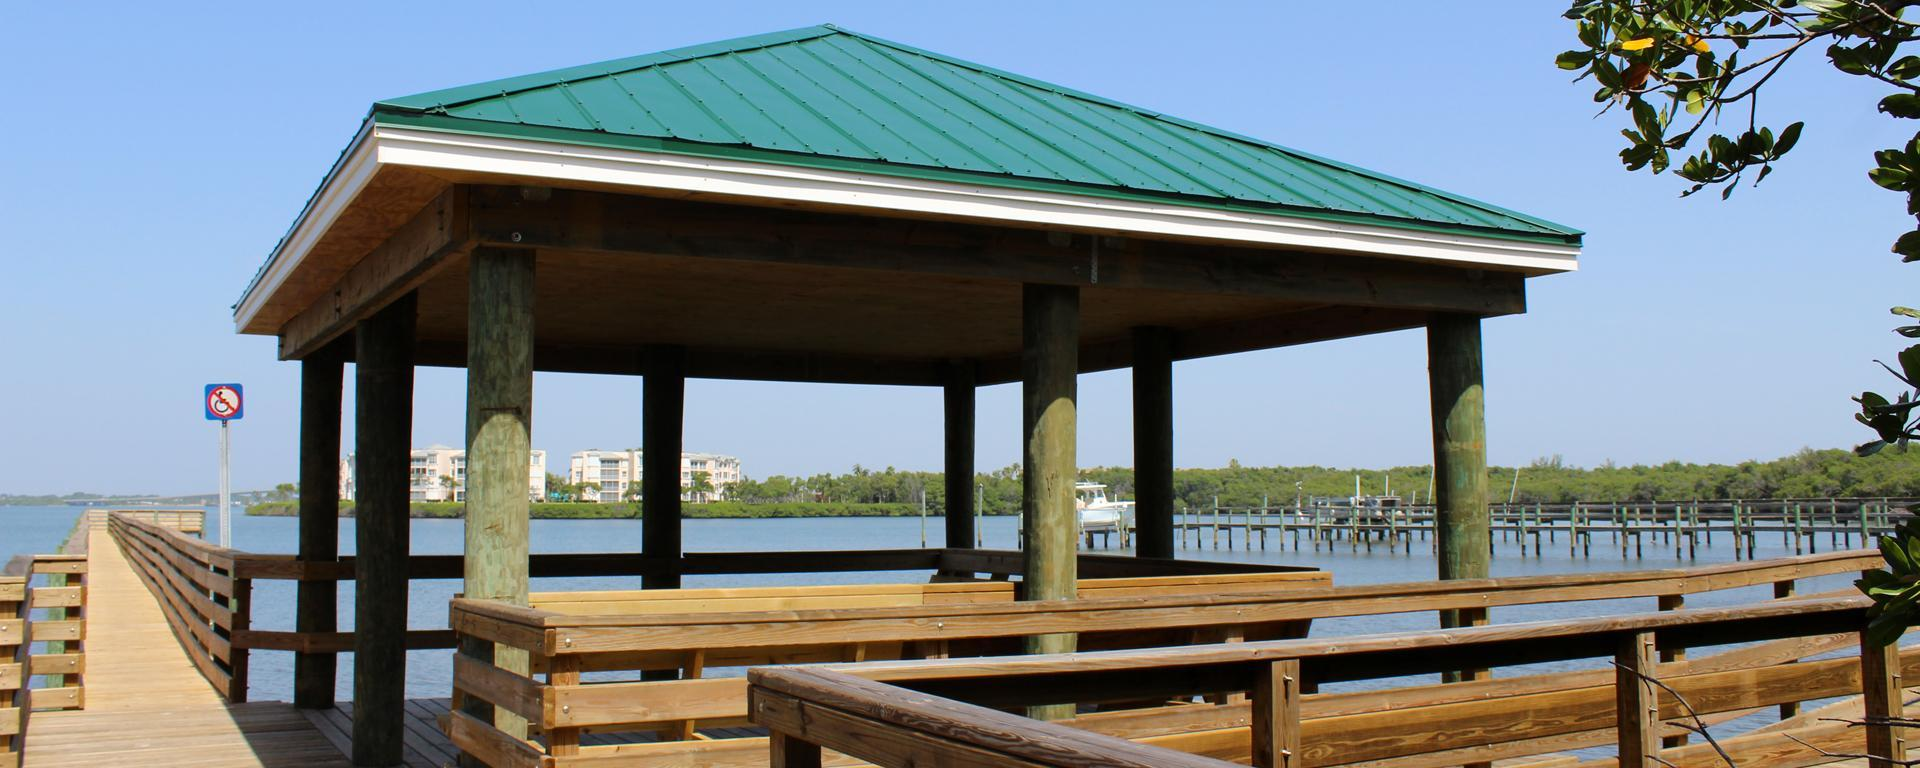 A pavilion at Clifton S. Perry Beach